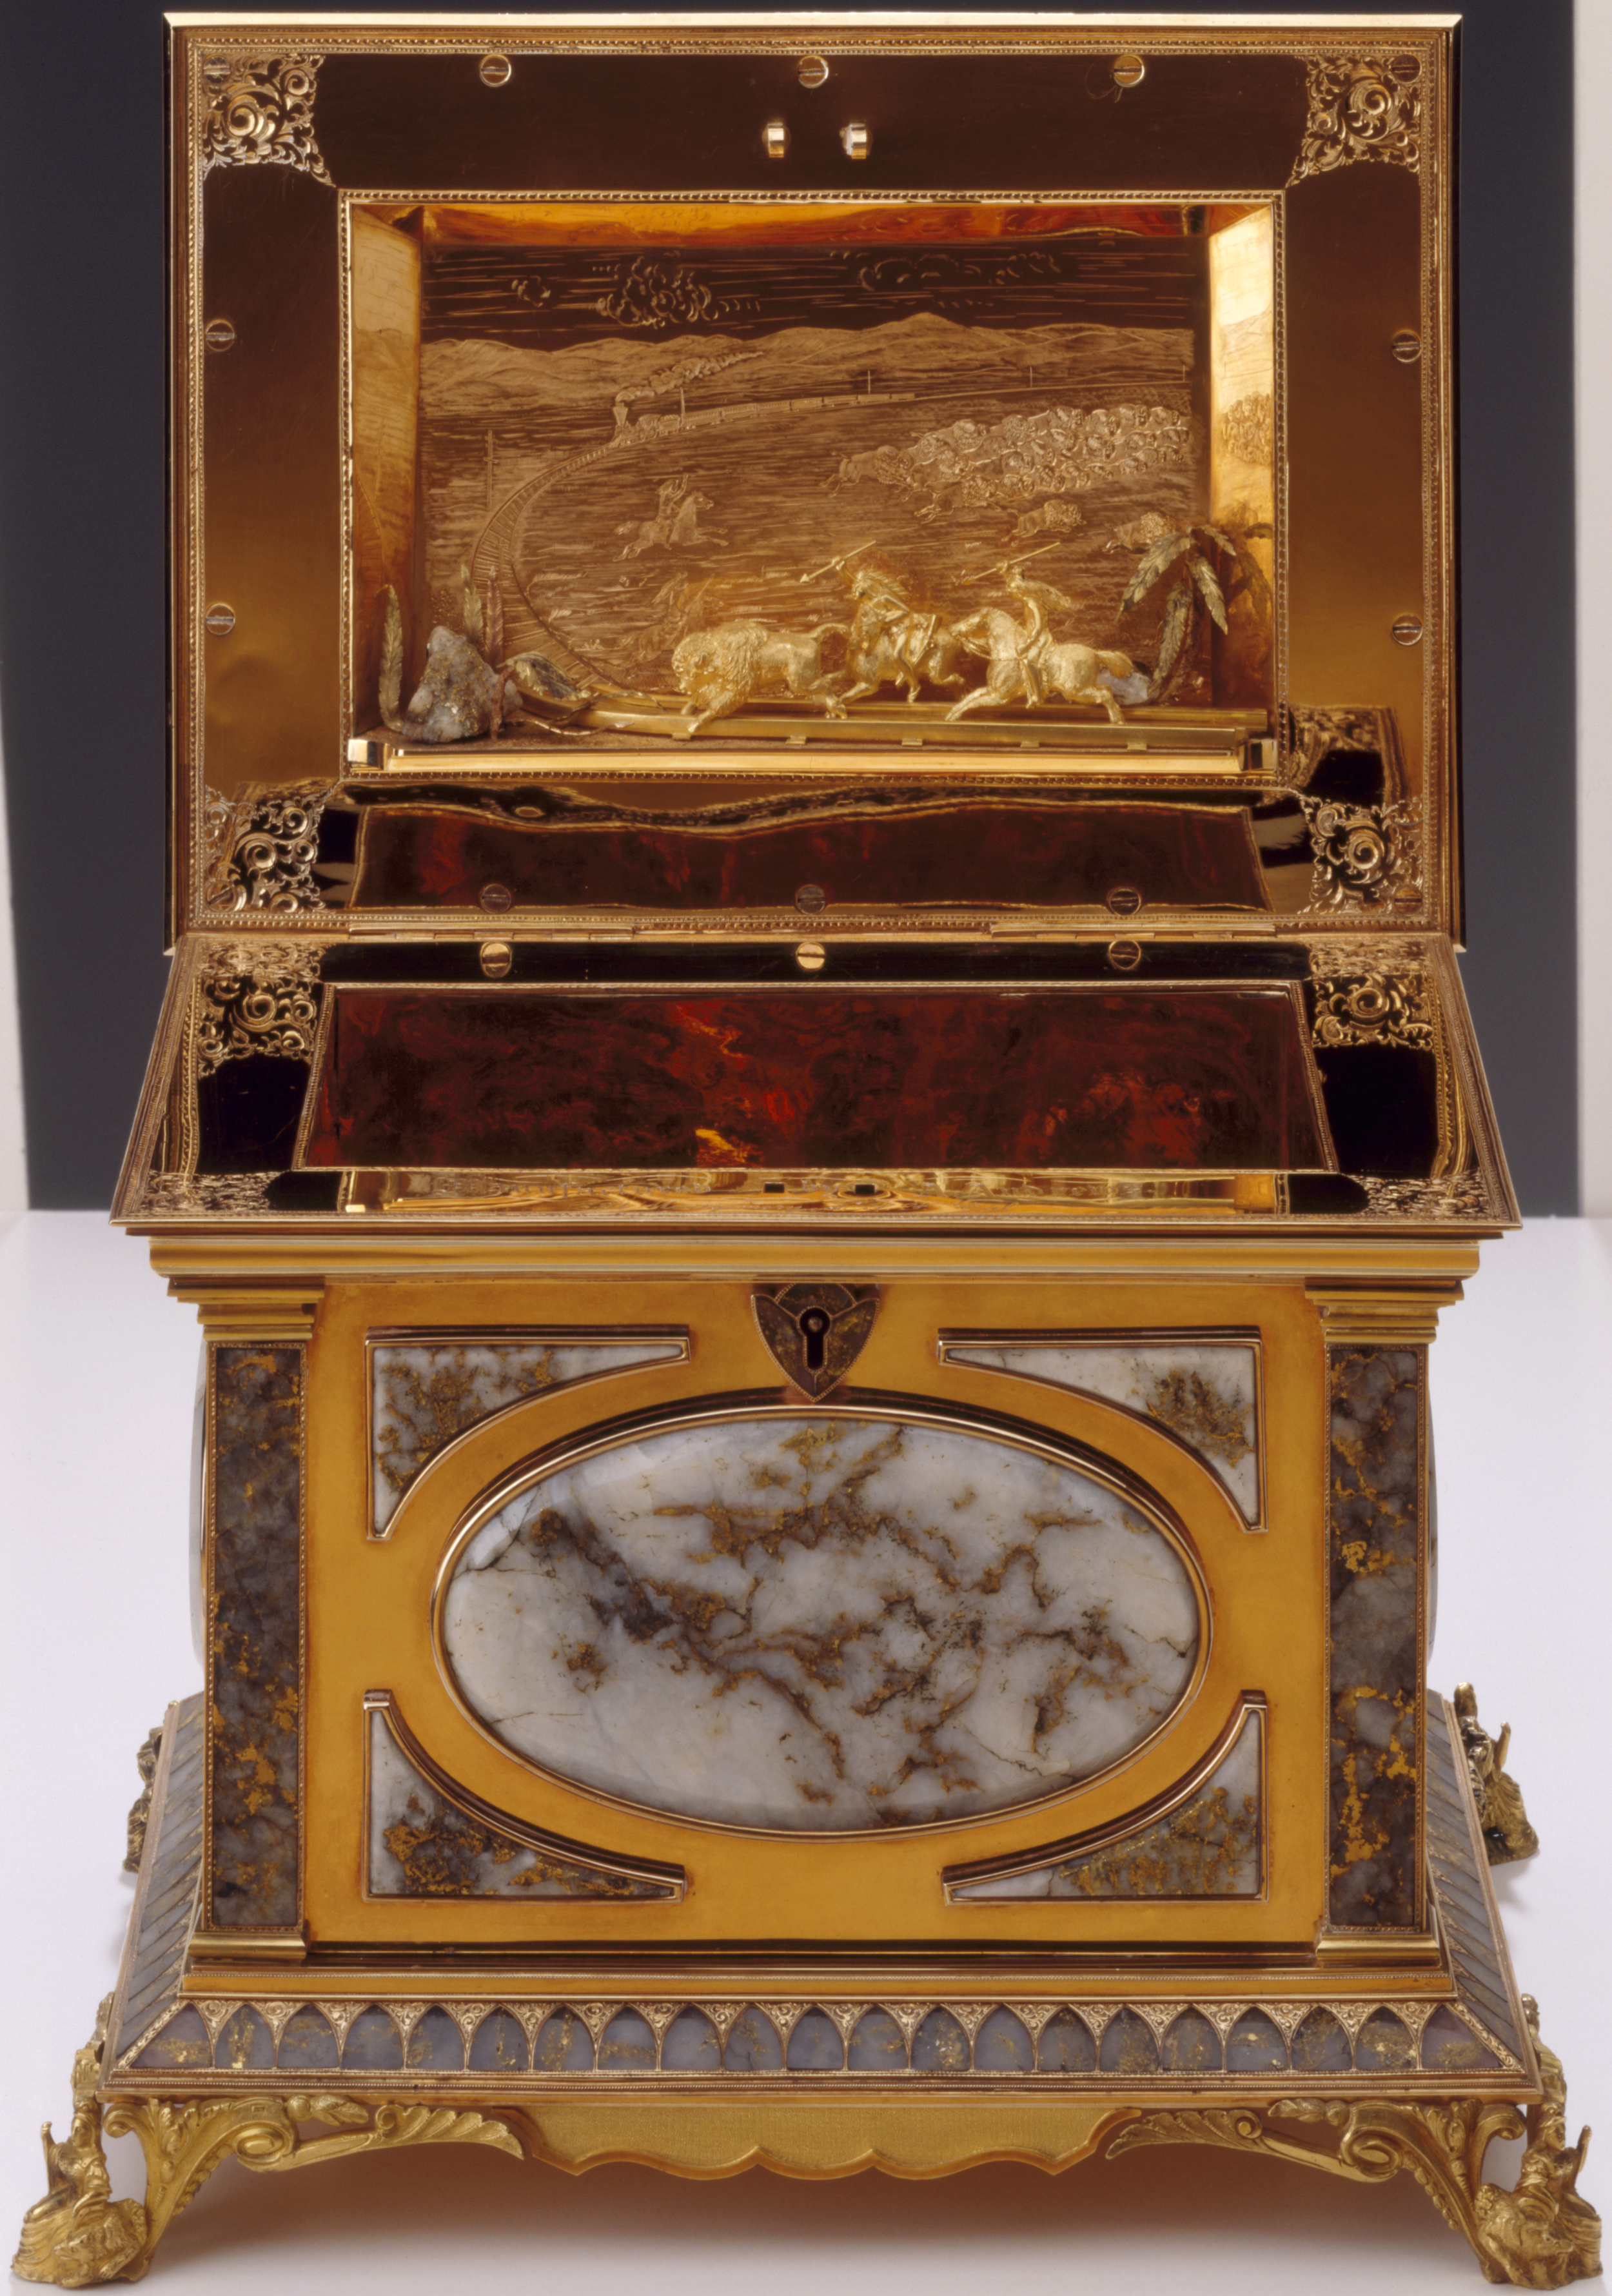 The History Blog Blog Archive Gold Rush jewelry box stolen from